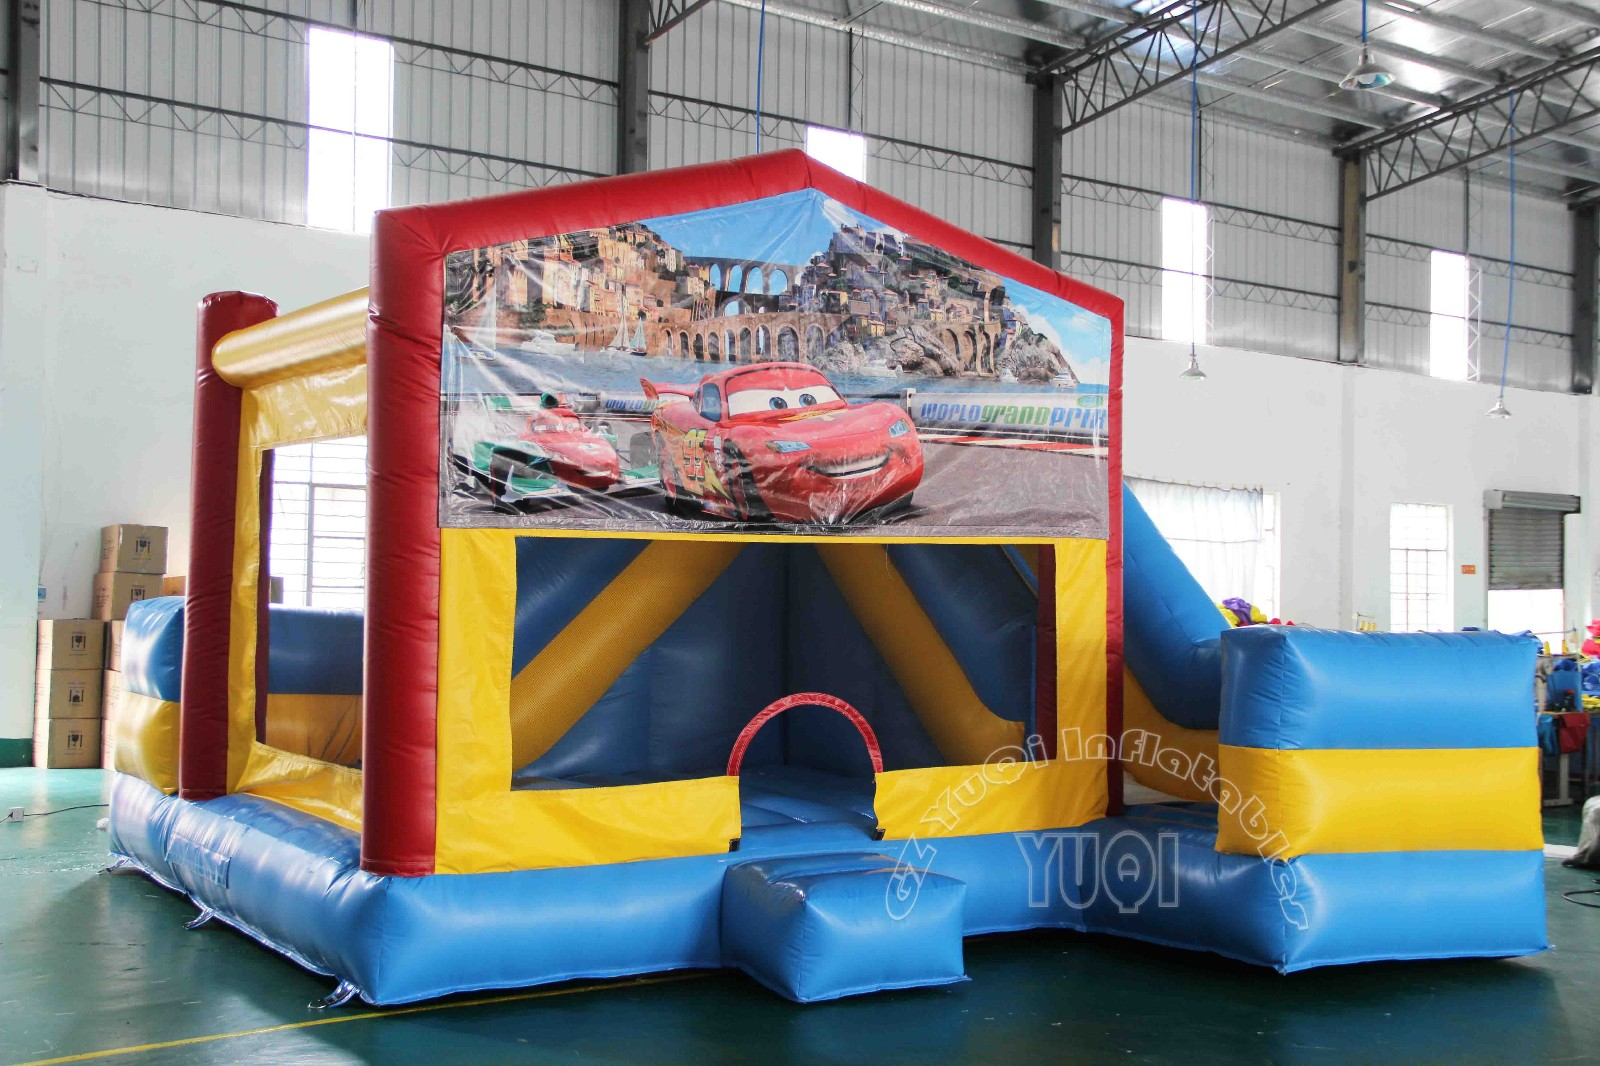 YUQI-Best Inflatable Bounce House Waterslide Combo For Sale For Kids